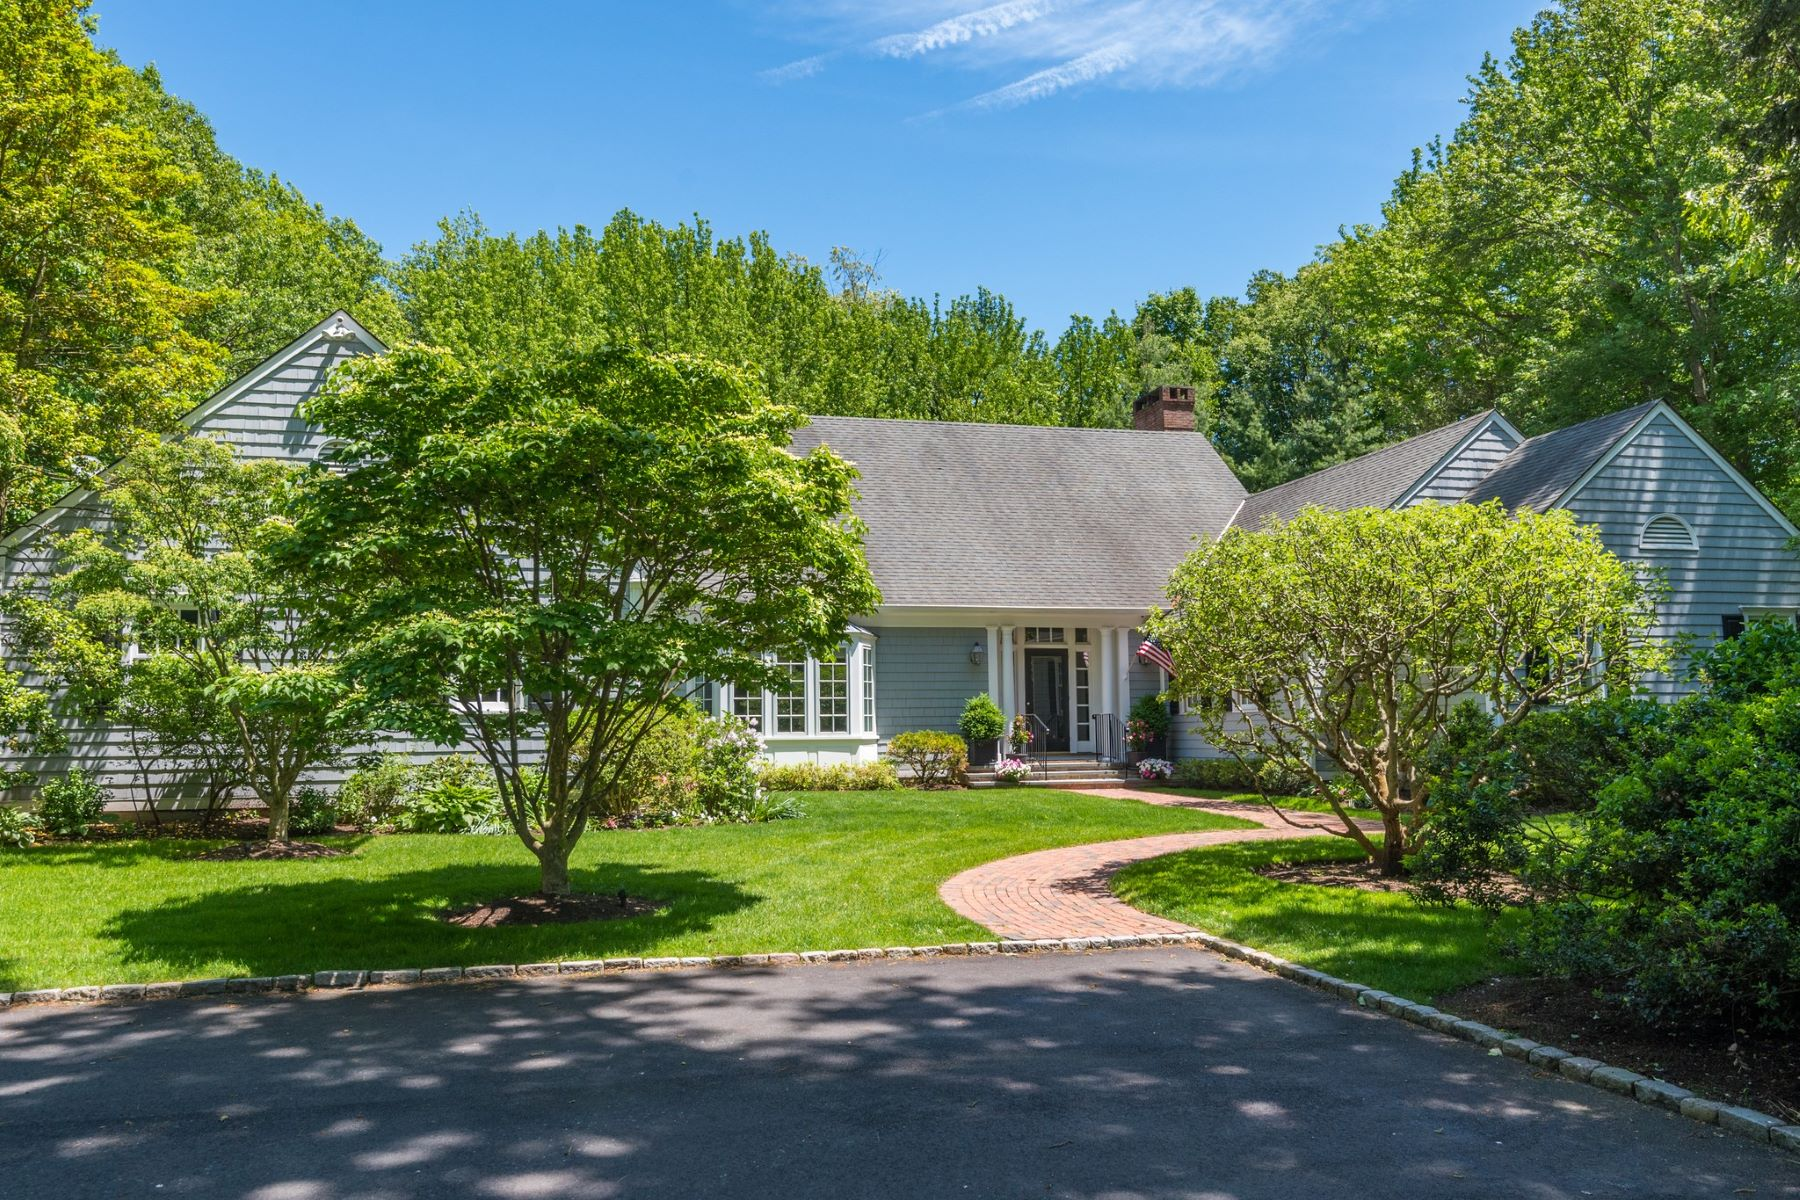 Single Family Homes for Sale at Glen Cove 35 Matinecock Farms Rd Glen Cove, New York 11542 United States